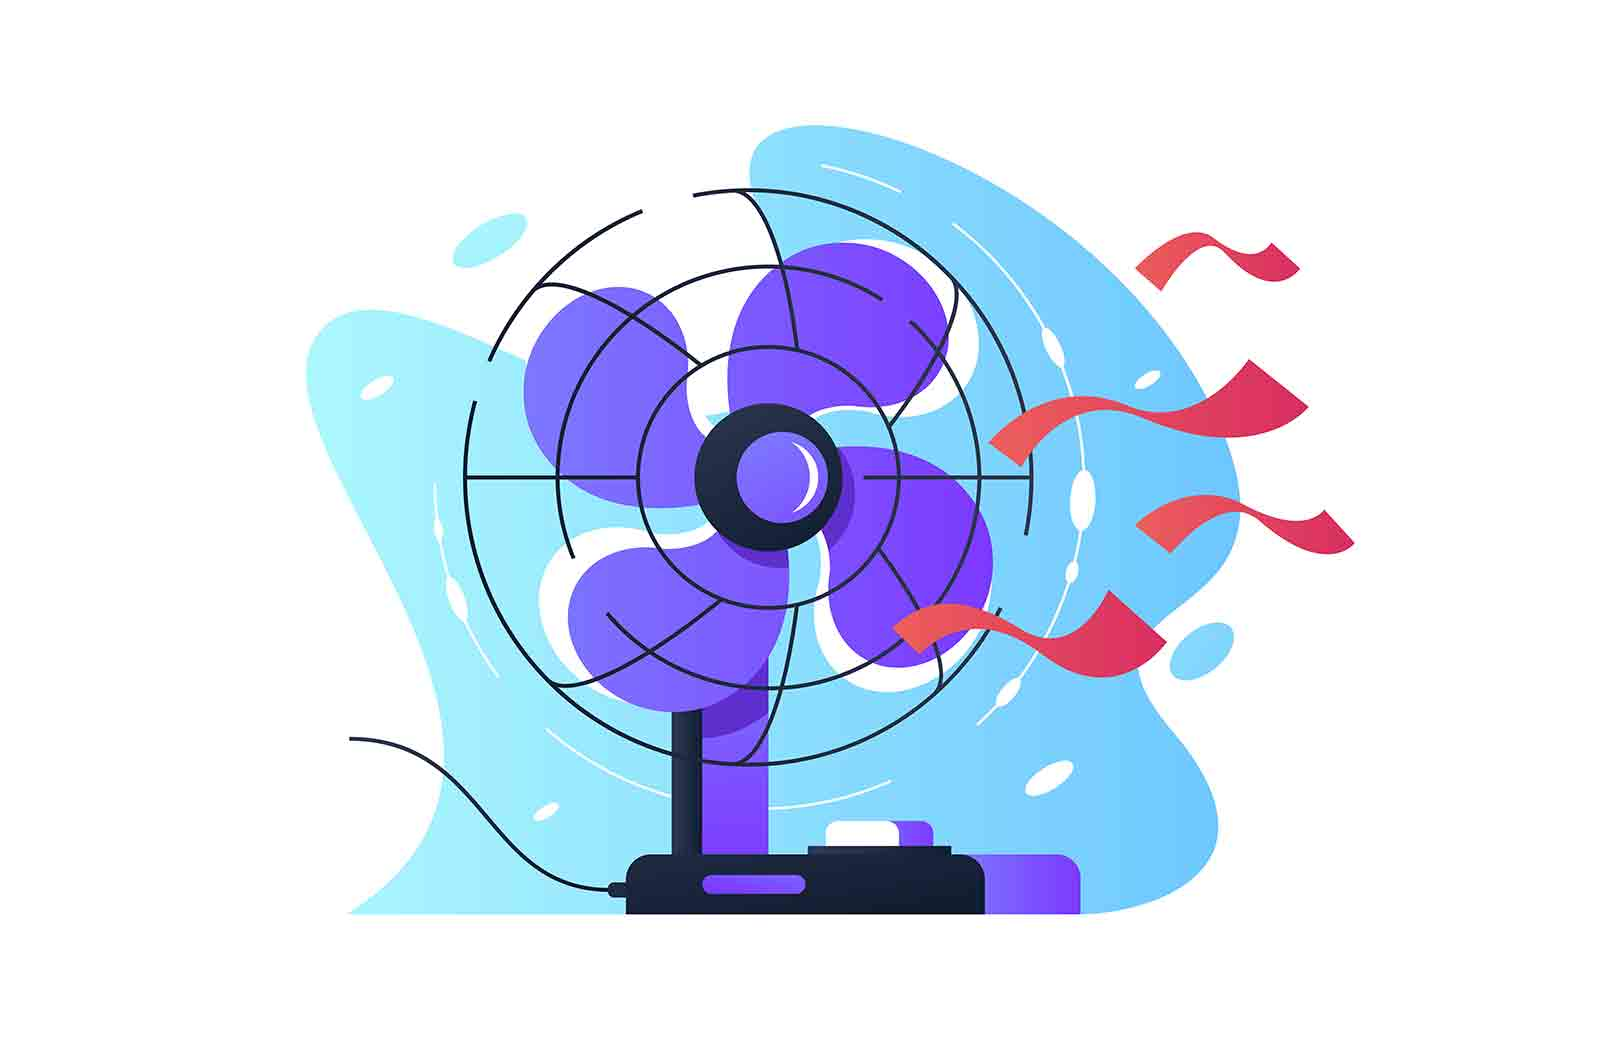 Table fan wind blows using red tape for visual presentation. Isolated concept icon of modern technology for summer heat rescue. Vector illustration.